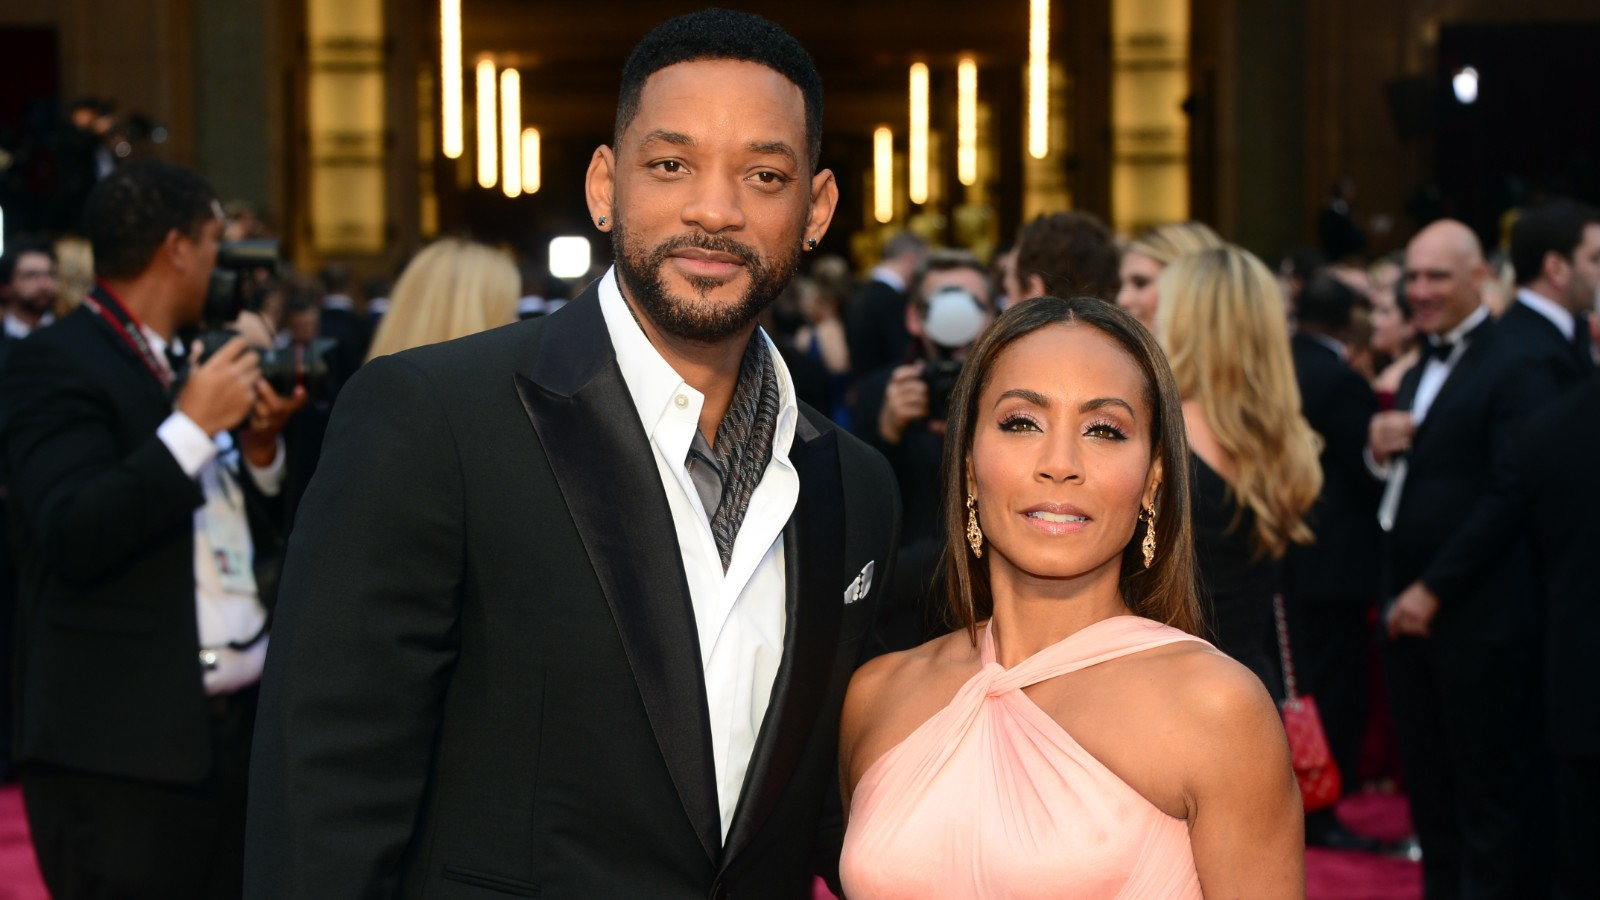 "and Jada Pinkett Smith ""width ="" 1600 ""height ="" 900 ""srcset ="" https://www.top5.com/wp-content/uploads/2013 / 07 / will-and-jada-pinkett -smith-.jpg 1600w, https://www.top5.com/wp-content/uploads/2013/07/will-and-jada-pinkett-smith--300x169. jpg 300w, https: //www.top5.com/com/wp-content/uploads/ 2013/07 / will-and-jada-pinkett-smith - 768x432.jpg 768w, https://www.top5.com/wp- content / uploads / 2013/07 / will-and-jada-pinkett-smith - 1024x576.jpg 1024w, https://www.top5.com/wp-content/uploads/2013/07/will-and-jada-pinkett -smith - 640x360.jpg 640w, https://www.top5.com/wp-content/uploads/2013/07/will-and-jada-pinkett-smith--320x180.jpg 320w, https: // www http://www.top5.com/wp-content/uploads/ 2013/7 /will-and-jada-pinkett-smith--316x177.jpg 316w ""Sizes ="" (max width: 1600px) 100vw, 1600px"